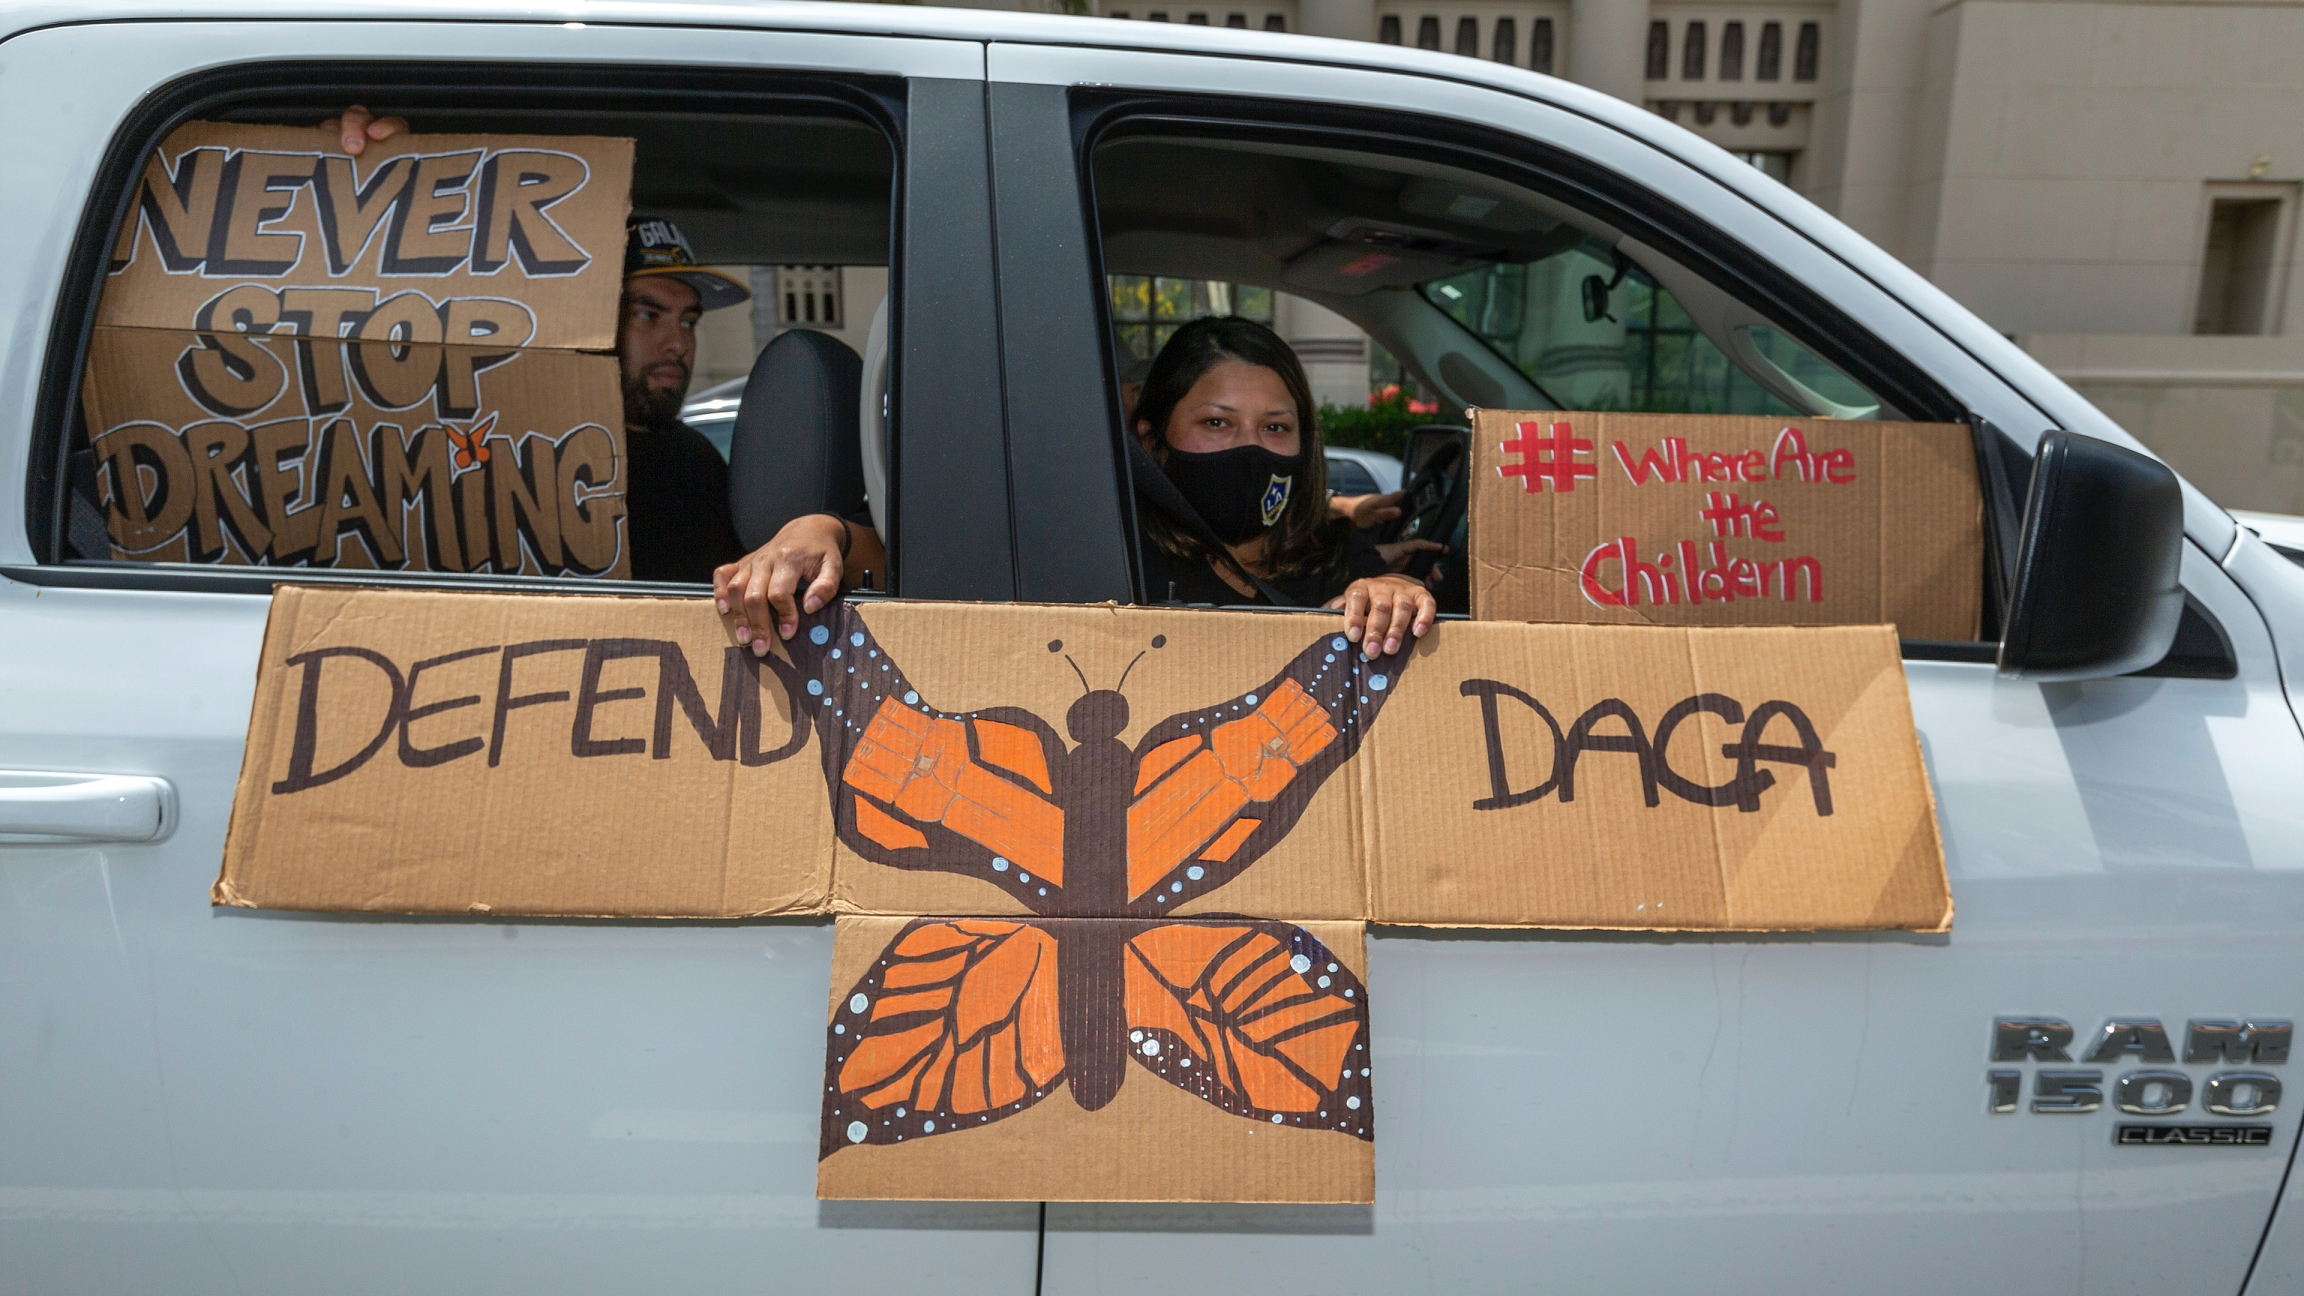 An immigrant family joins members of Coalition for Humane Immigrant Rights of Los Angeles, CHIRLA, on a vehicle caravan rally to support the Deferred Action for Childhood Arrivals Program (DACA), around MacArthur Park in Los Angeles,June 18, 2020.